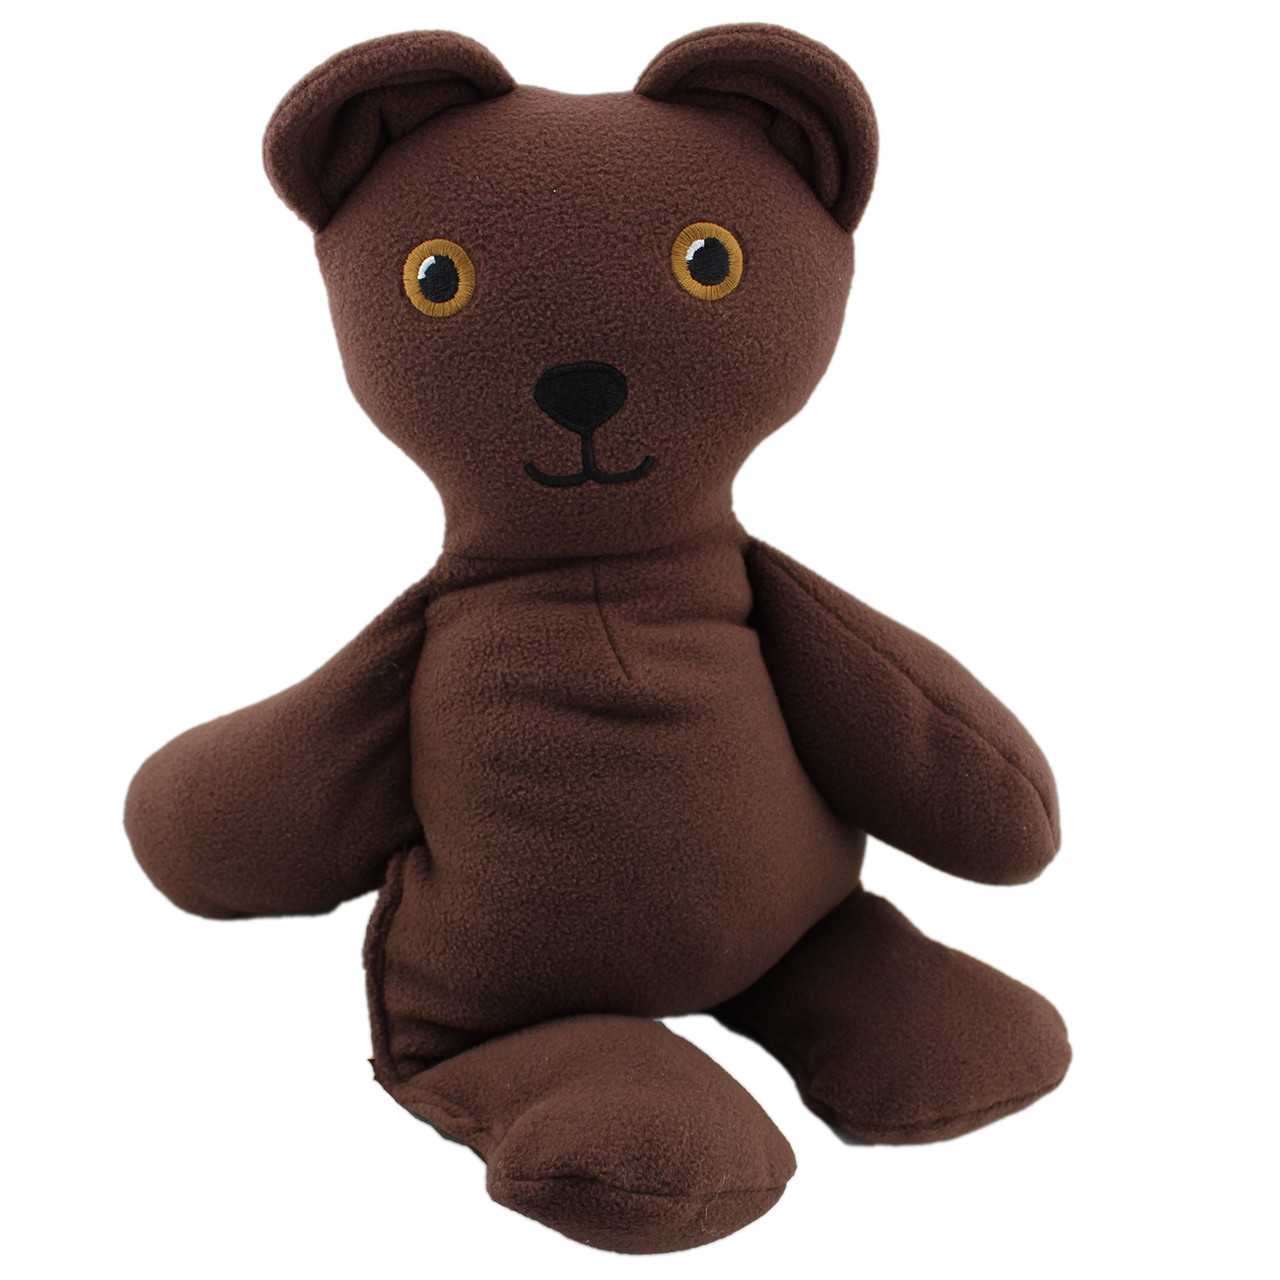 Weighted Washable Teddy Bear